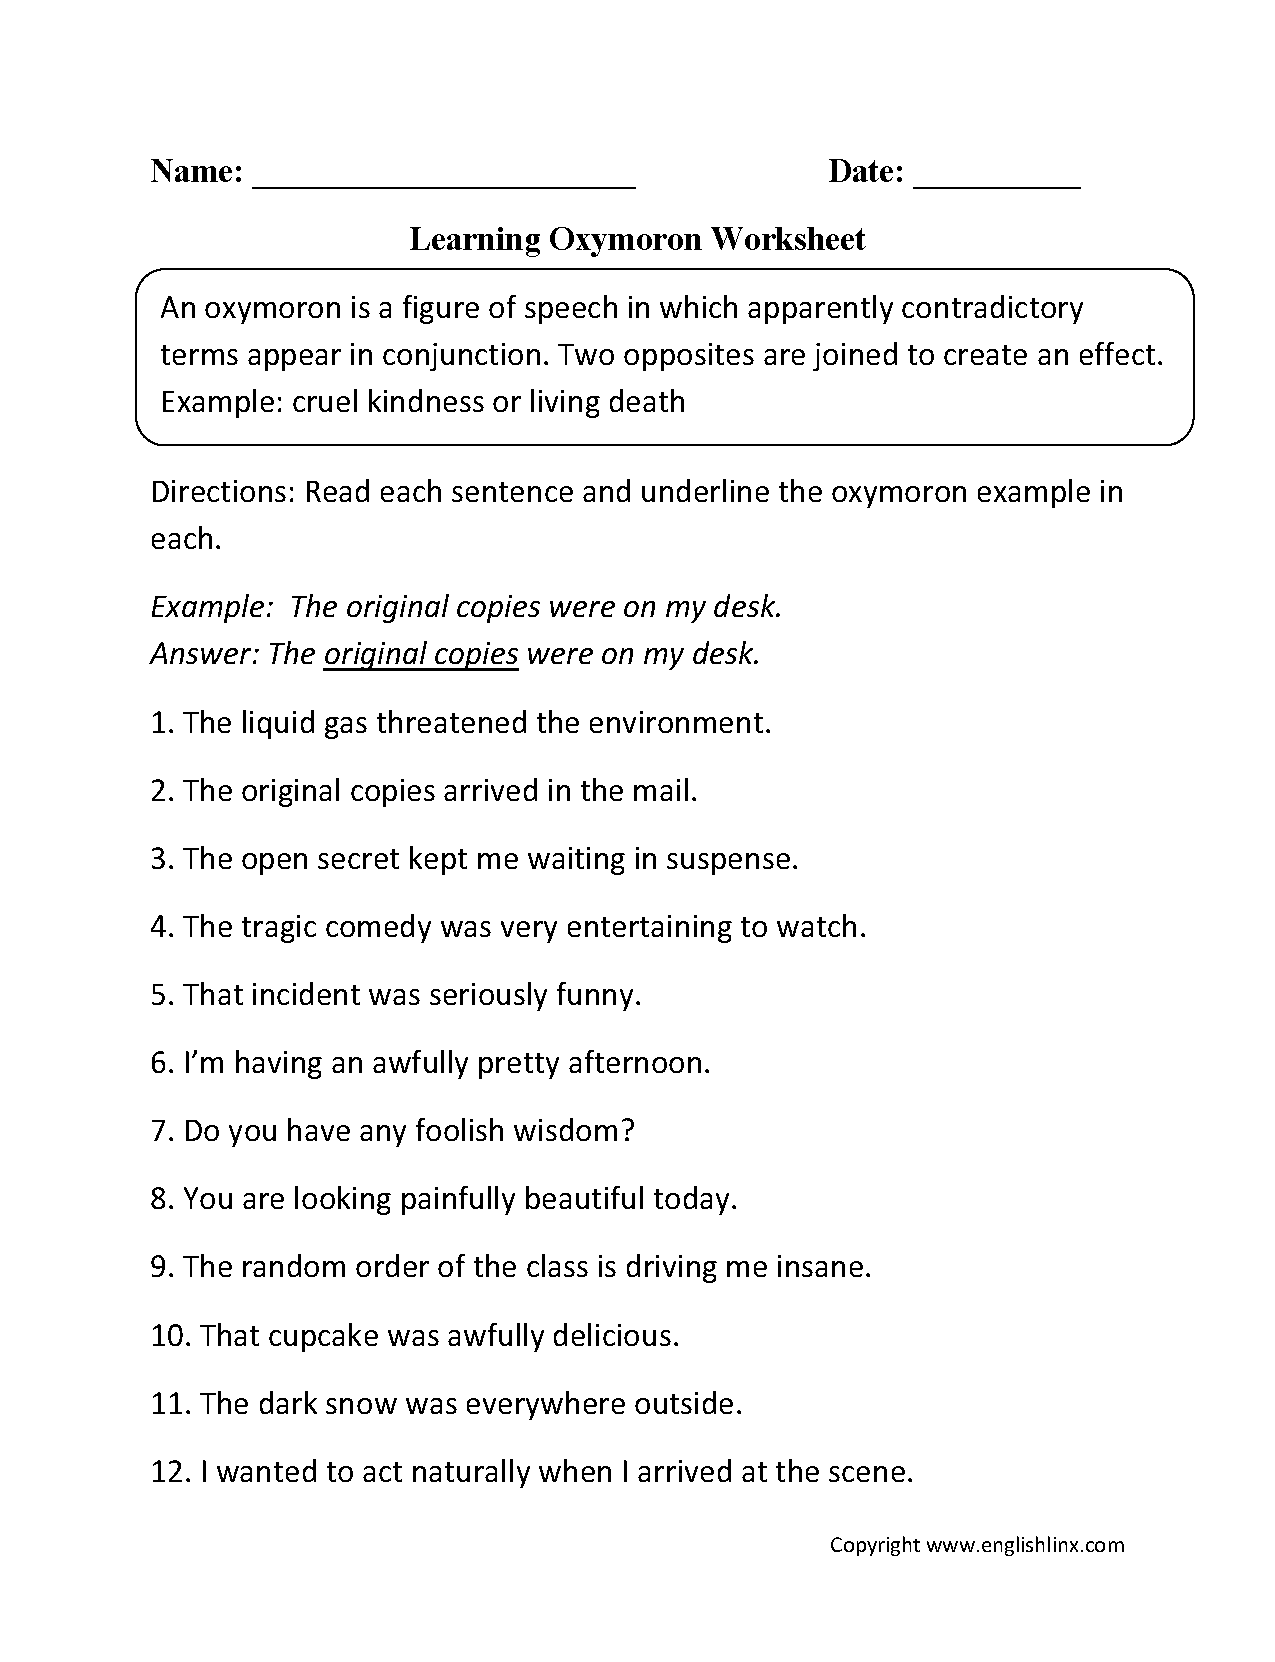 worksheet Poetry Worksheets Middle School oxymoron figurative language worksheets englishlinx com board teaching high schoolsteaching